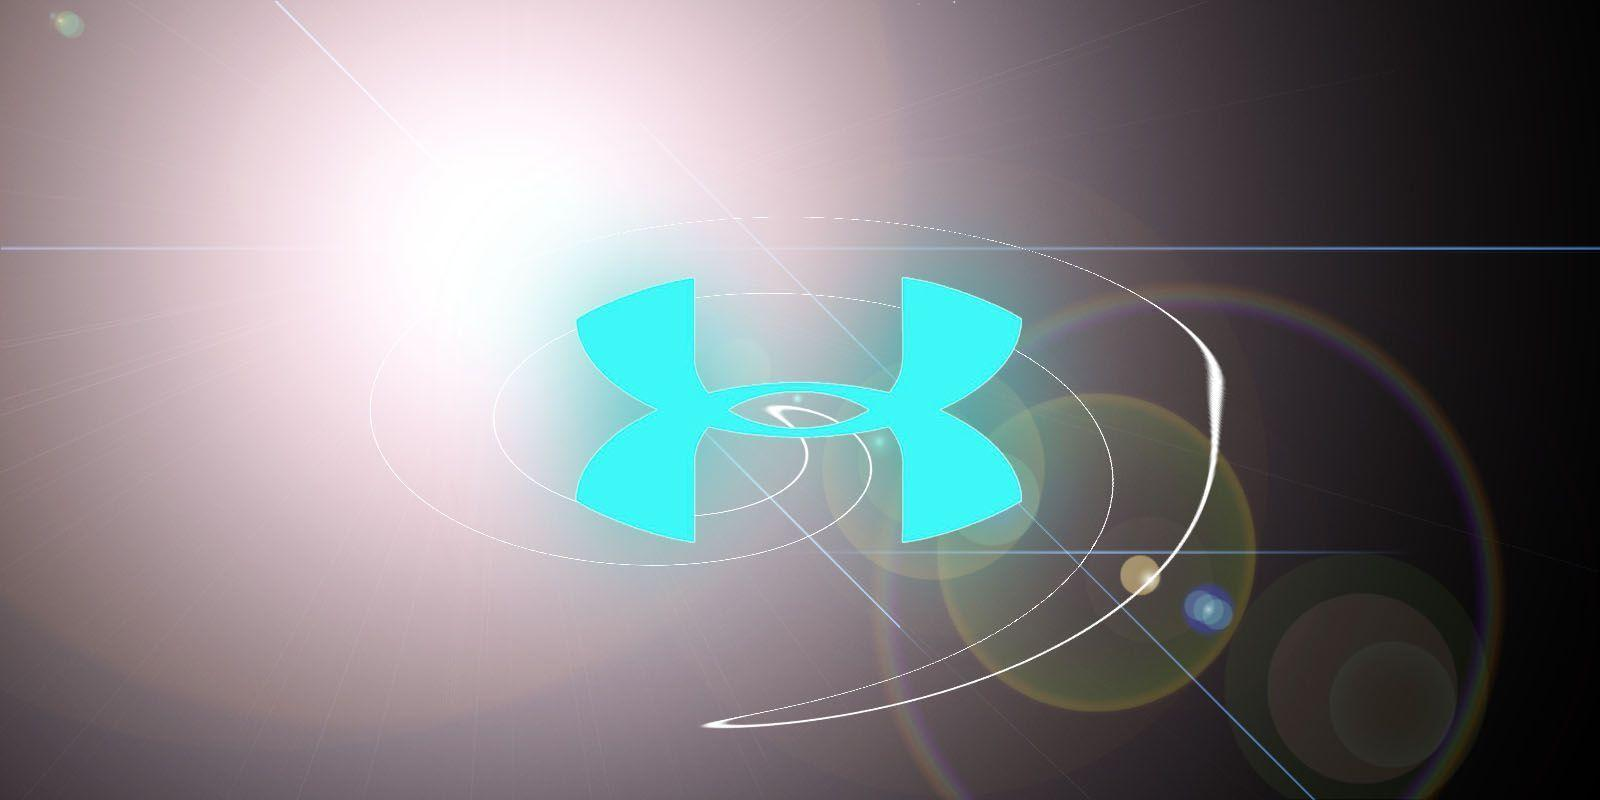 Pin Under Armour Wallpaper on Pinterest